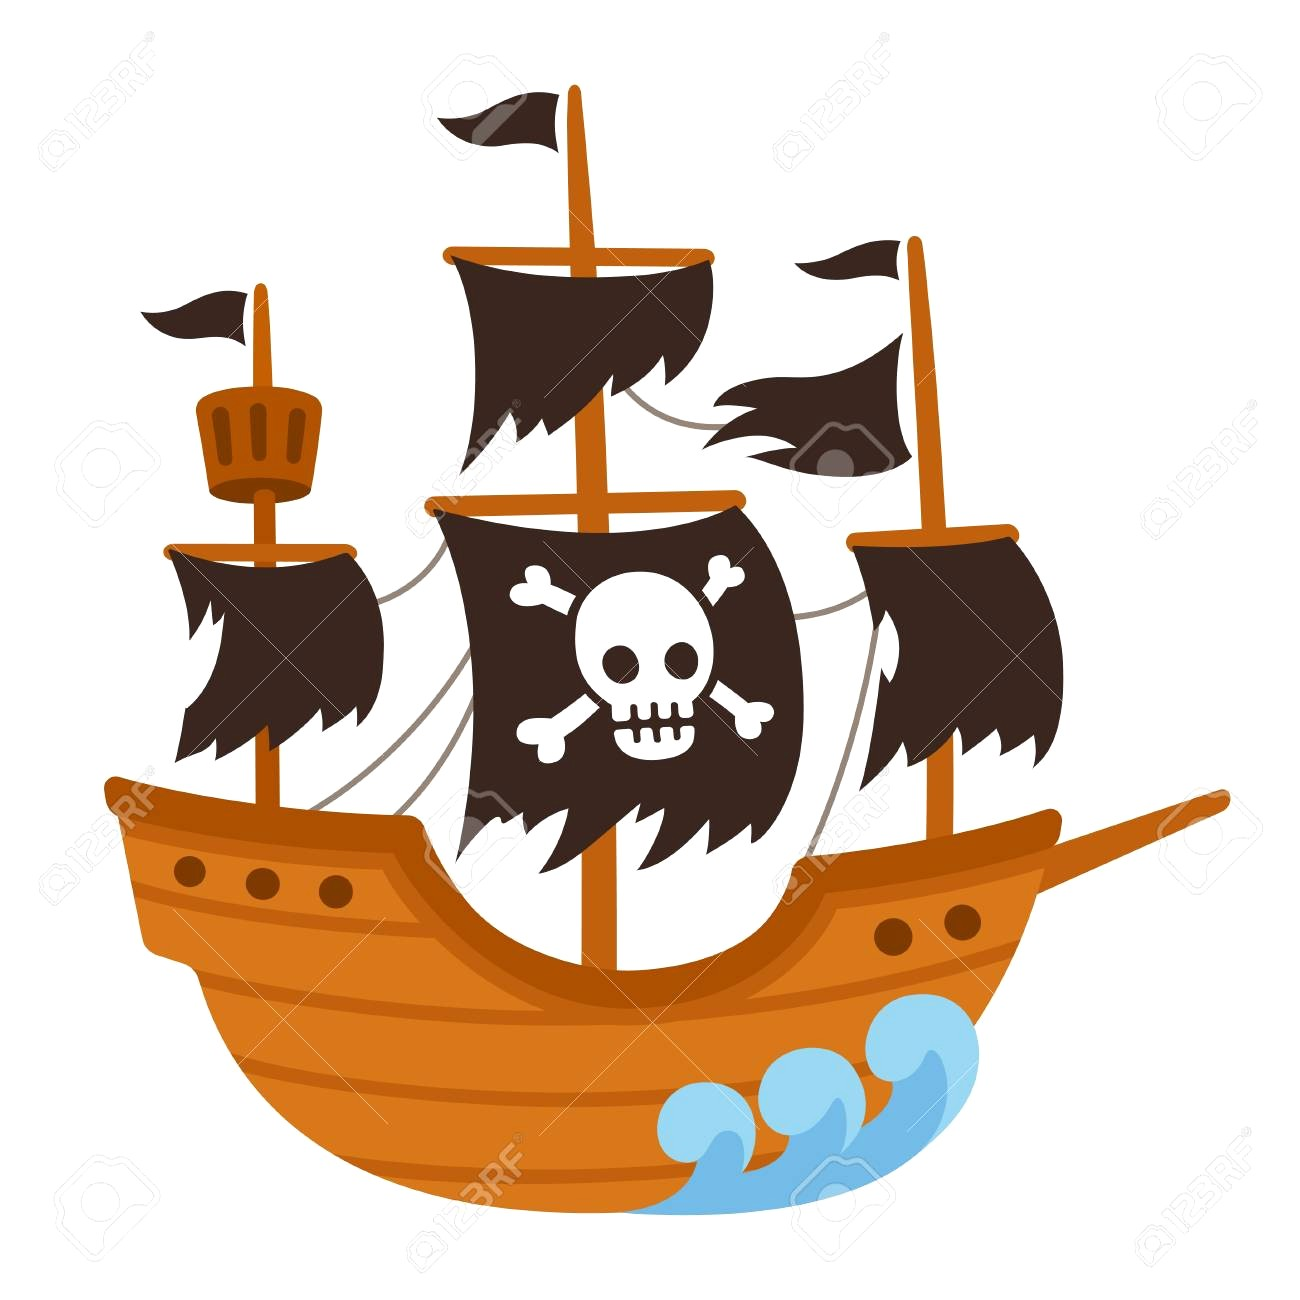 1300x1300 97530382 Cartoon Pirate Ghost Ship Illustration With Skull Flag